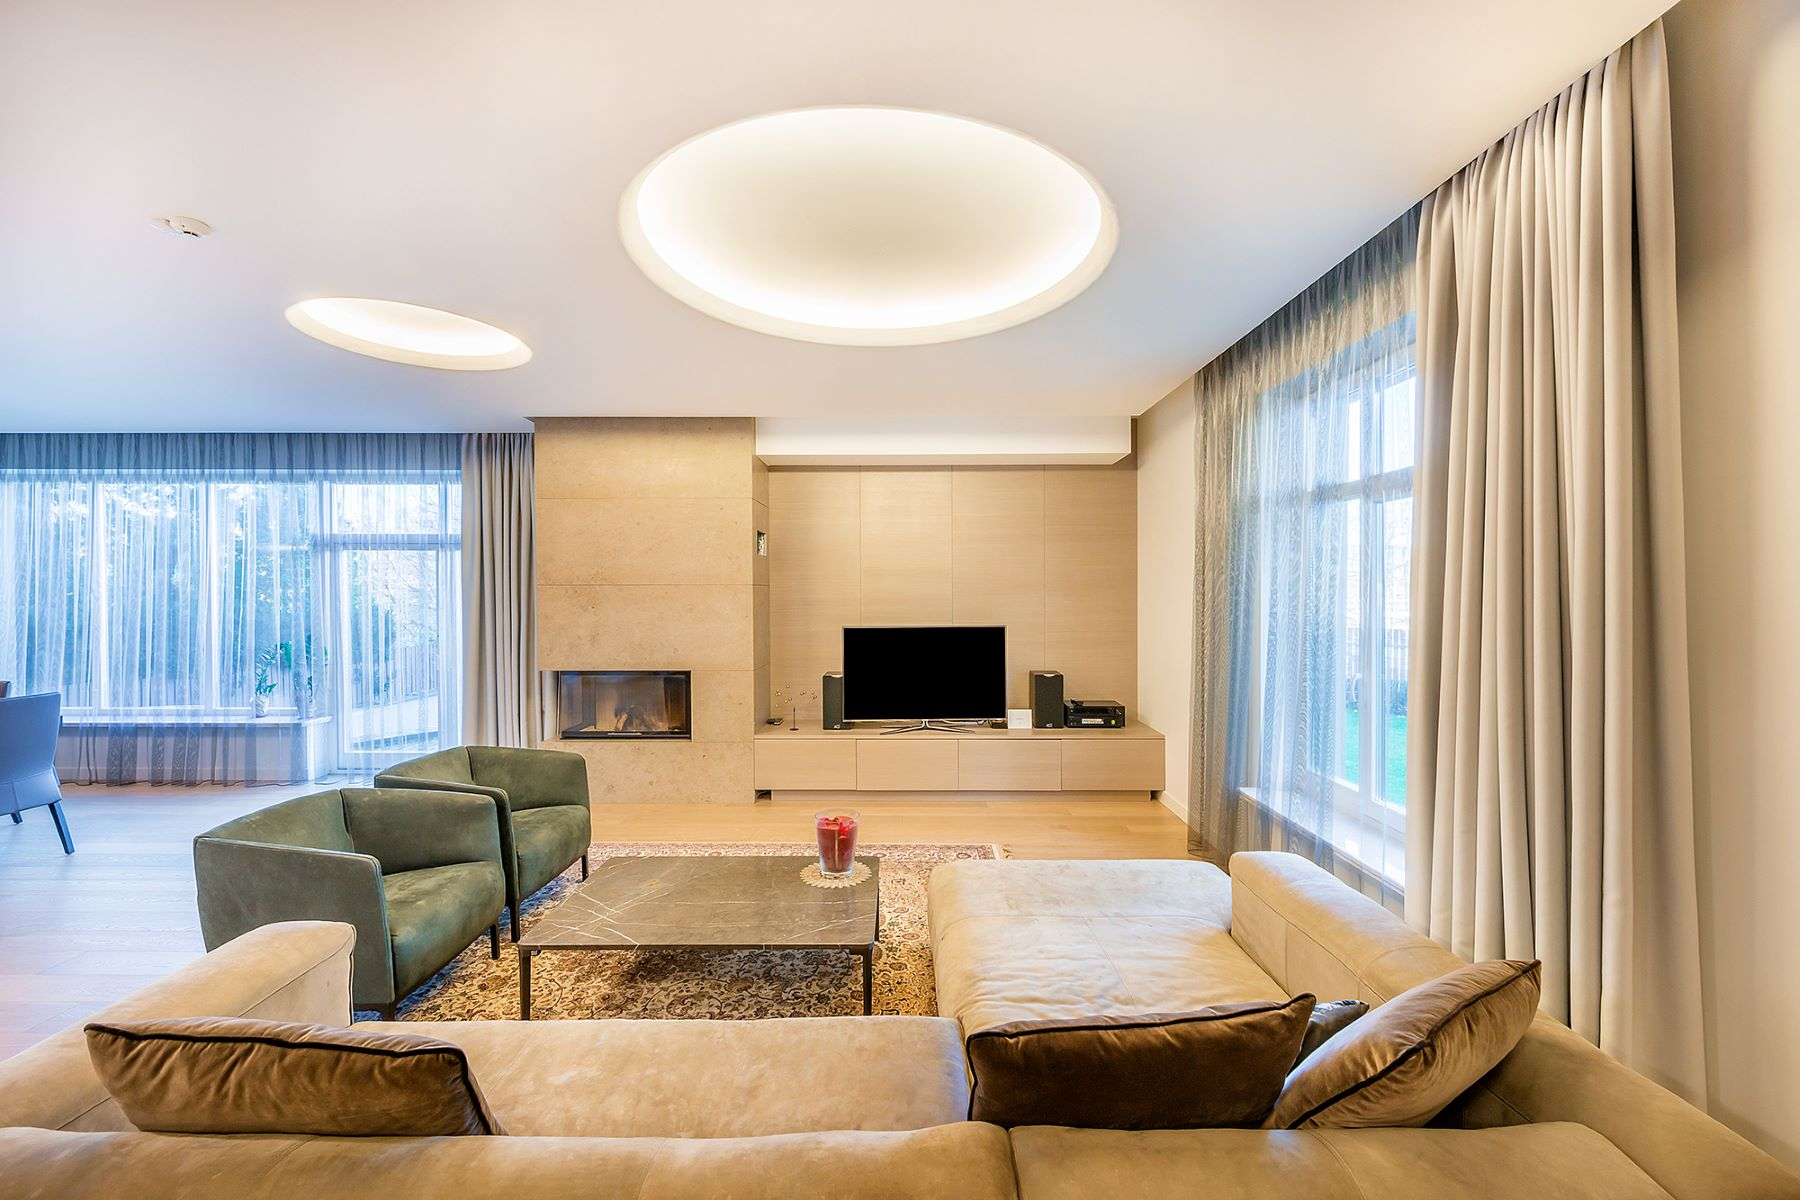 Single Family Home for Sale at A Semi-detached House of Modern Interior Vilnius, Vilnius County, Lithuania